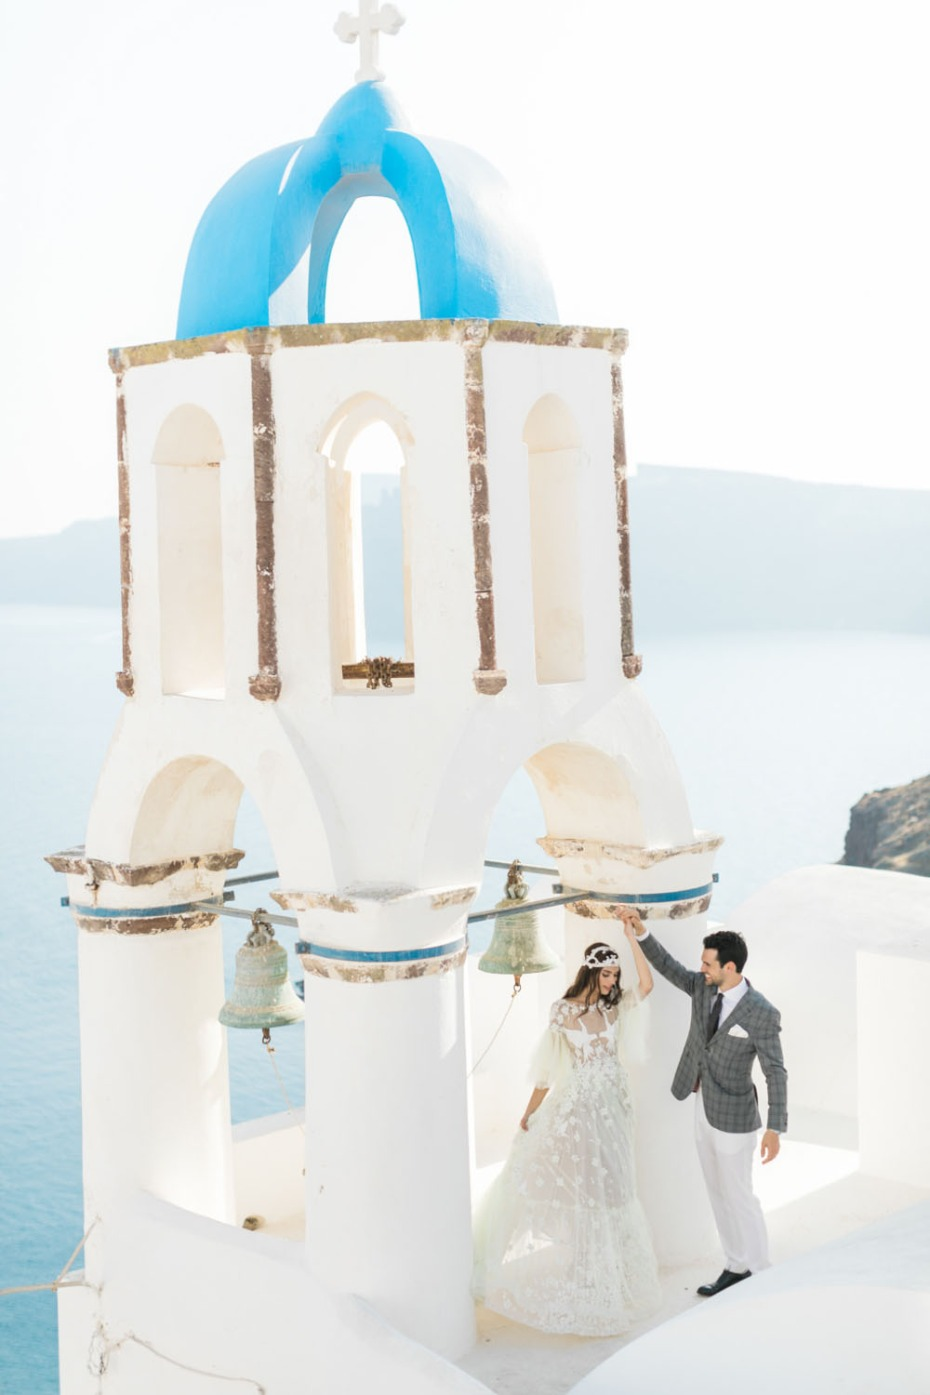 Get married in Santorini